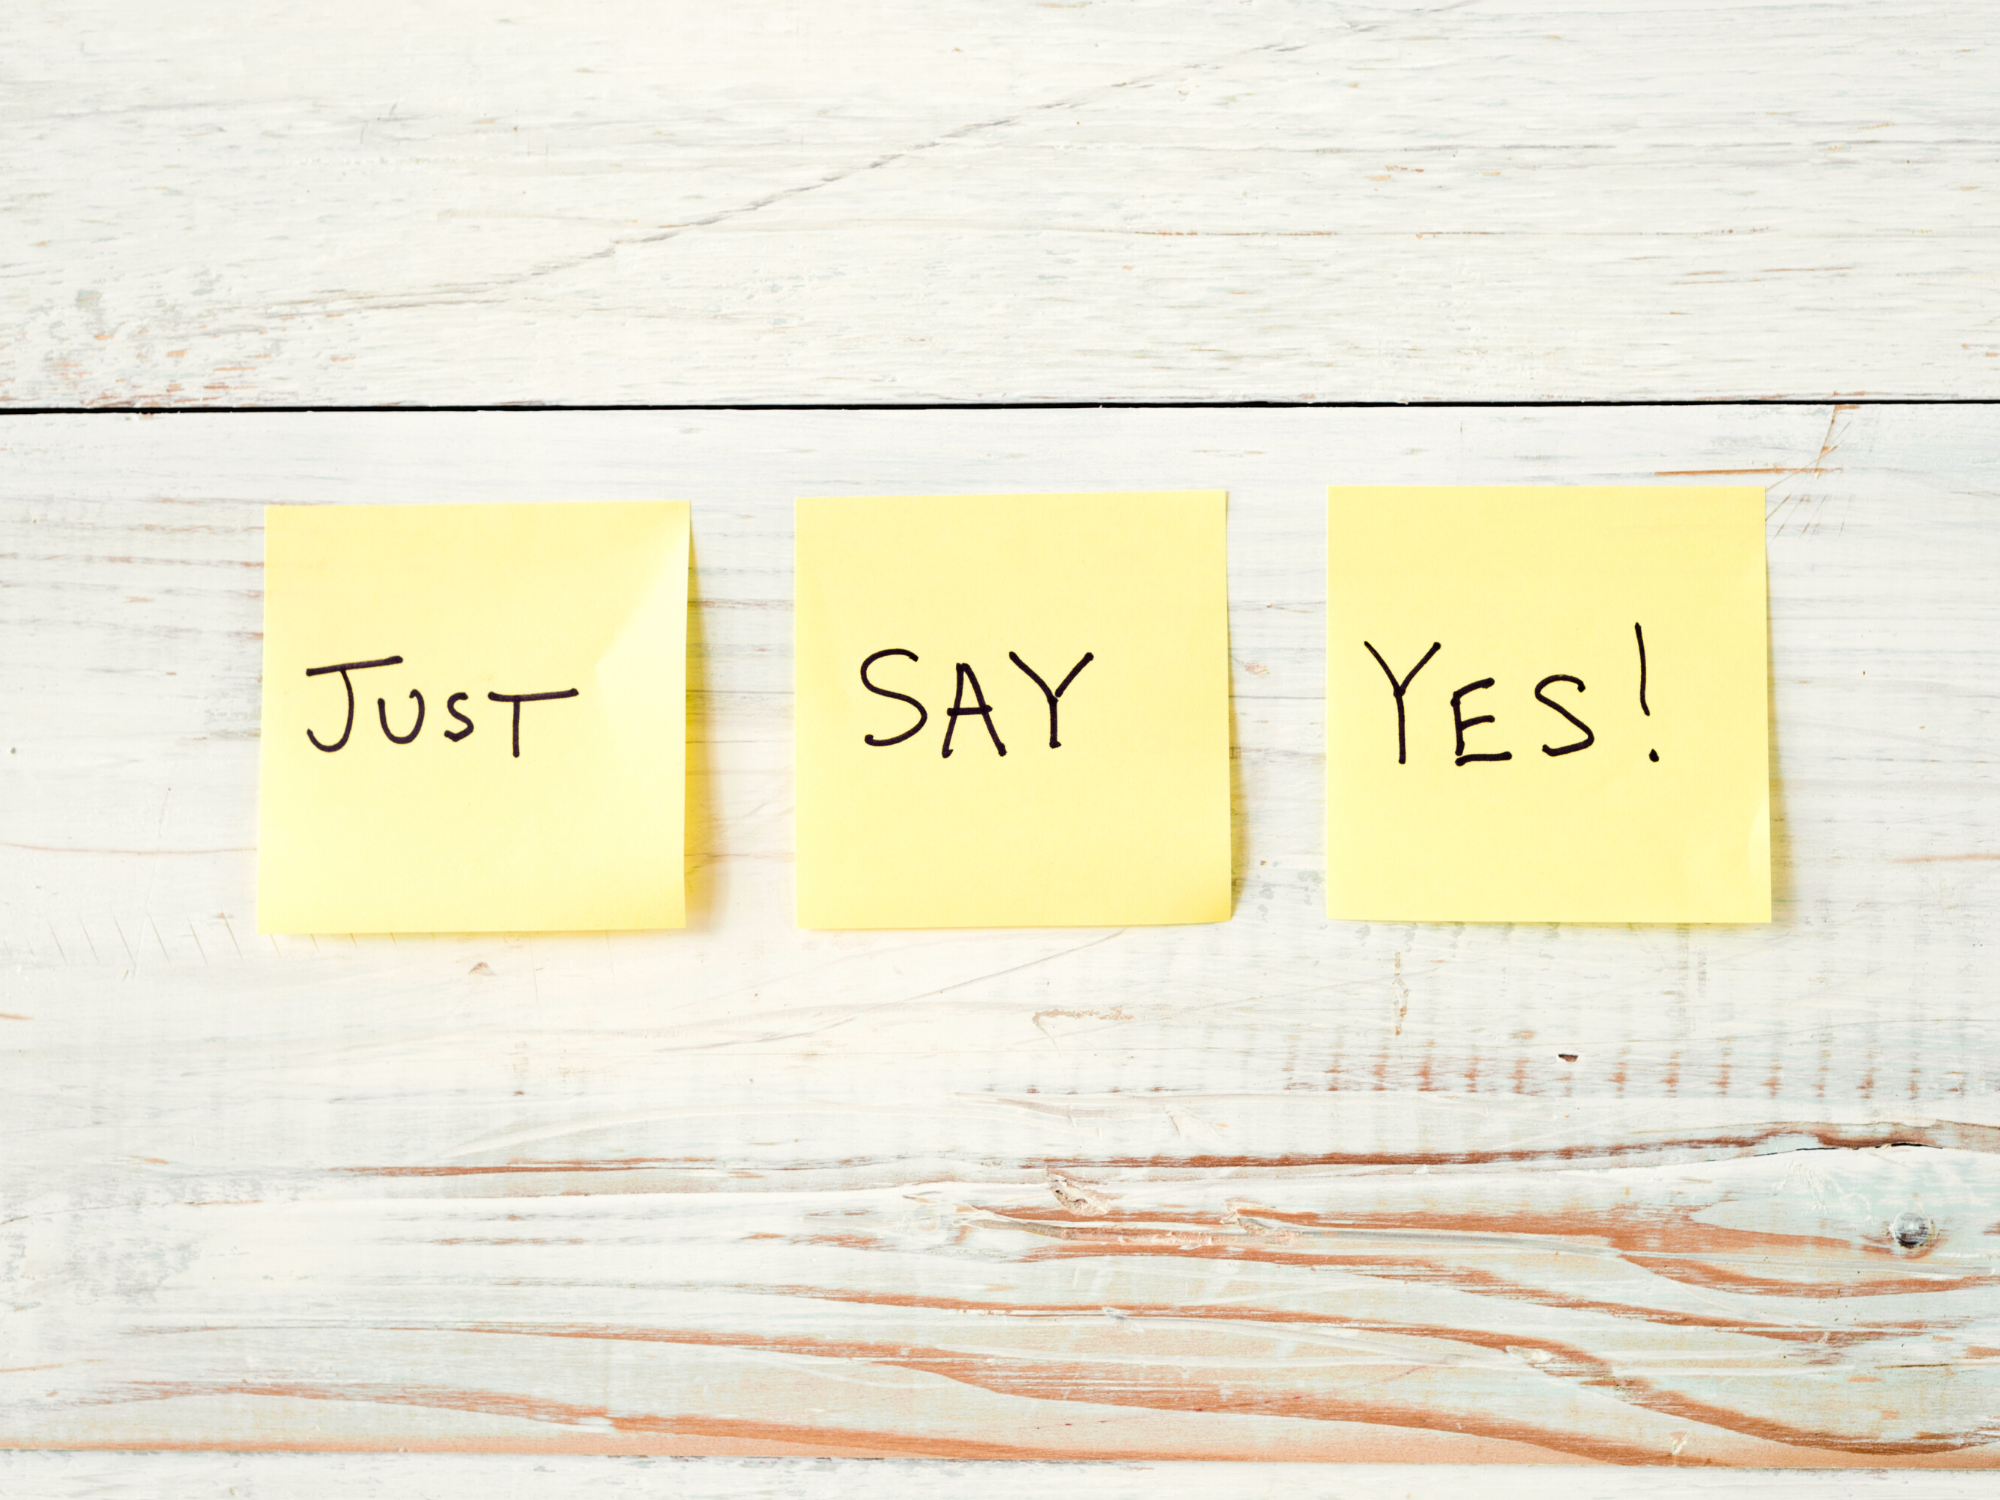 Just say yes on sticky notes